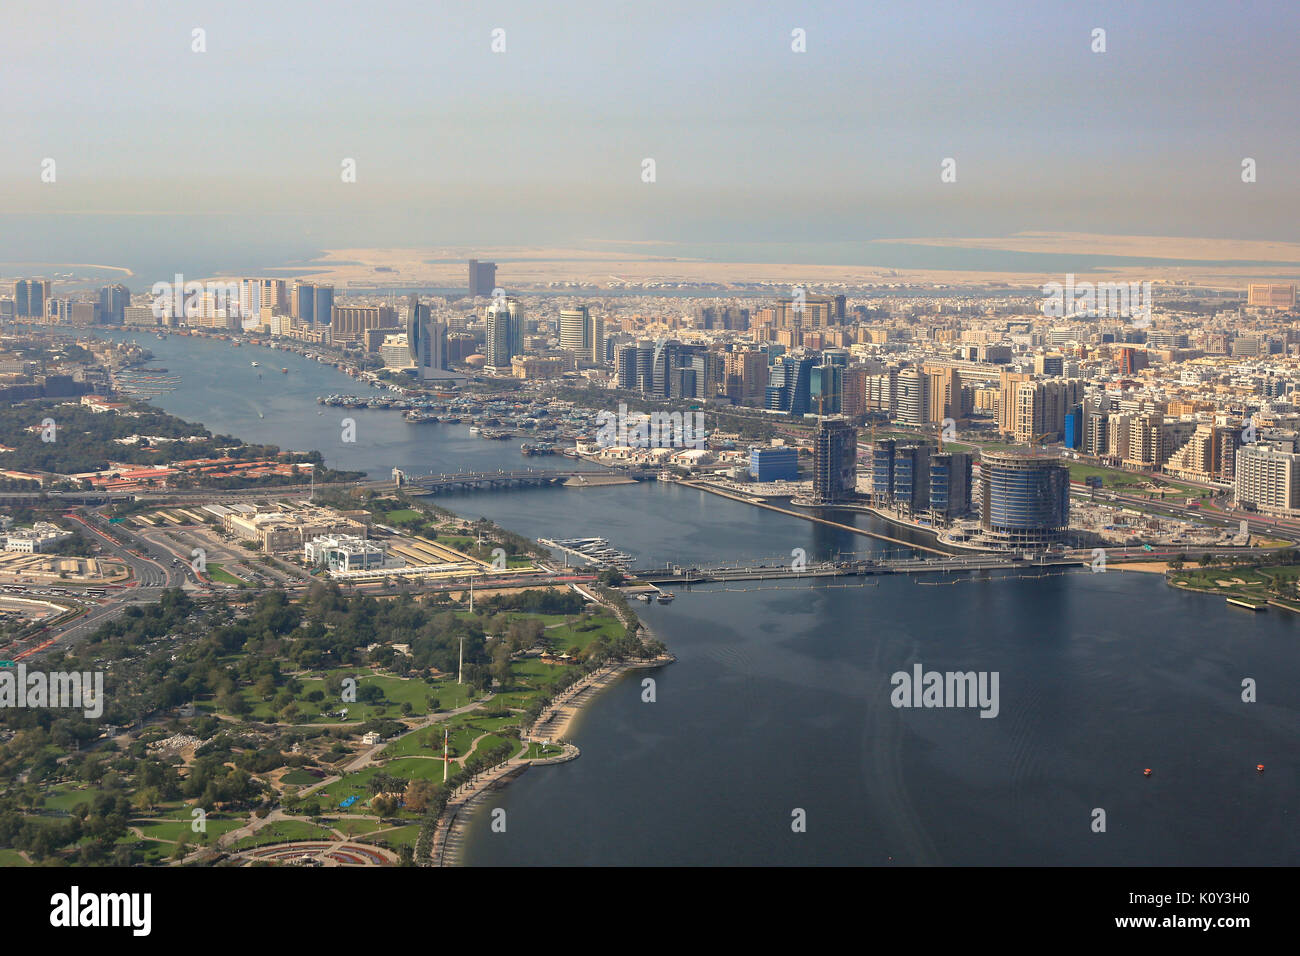 Dubai The Creek Floating Bridge aerial view photography UAE - Stock Image